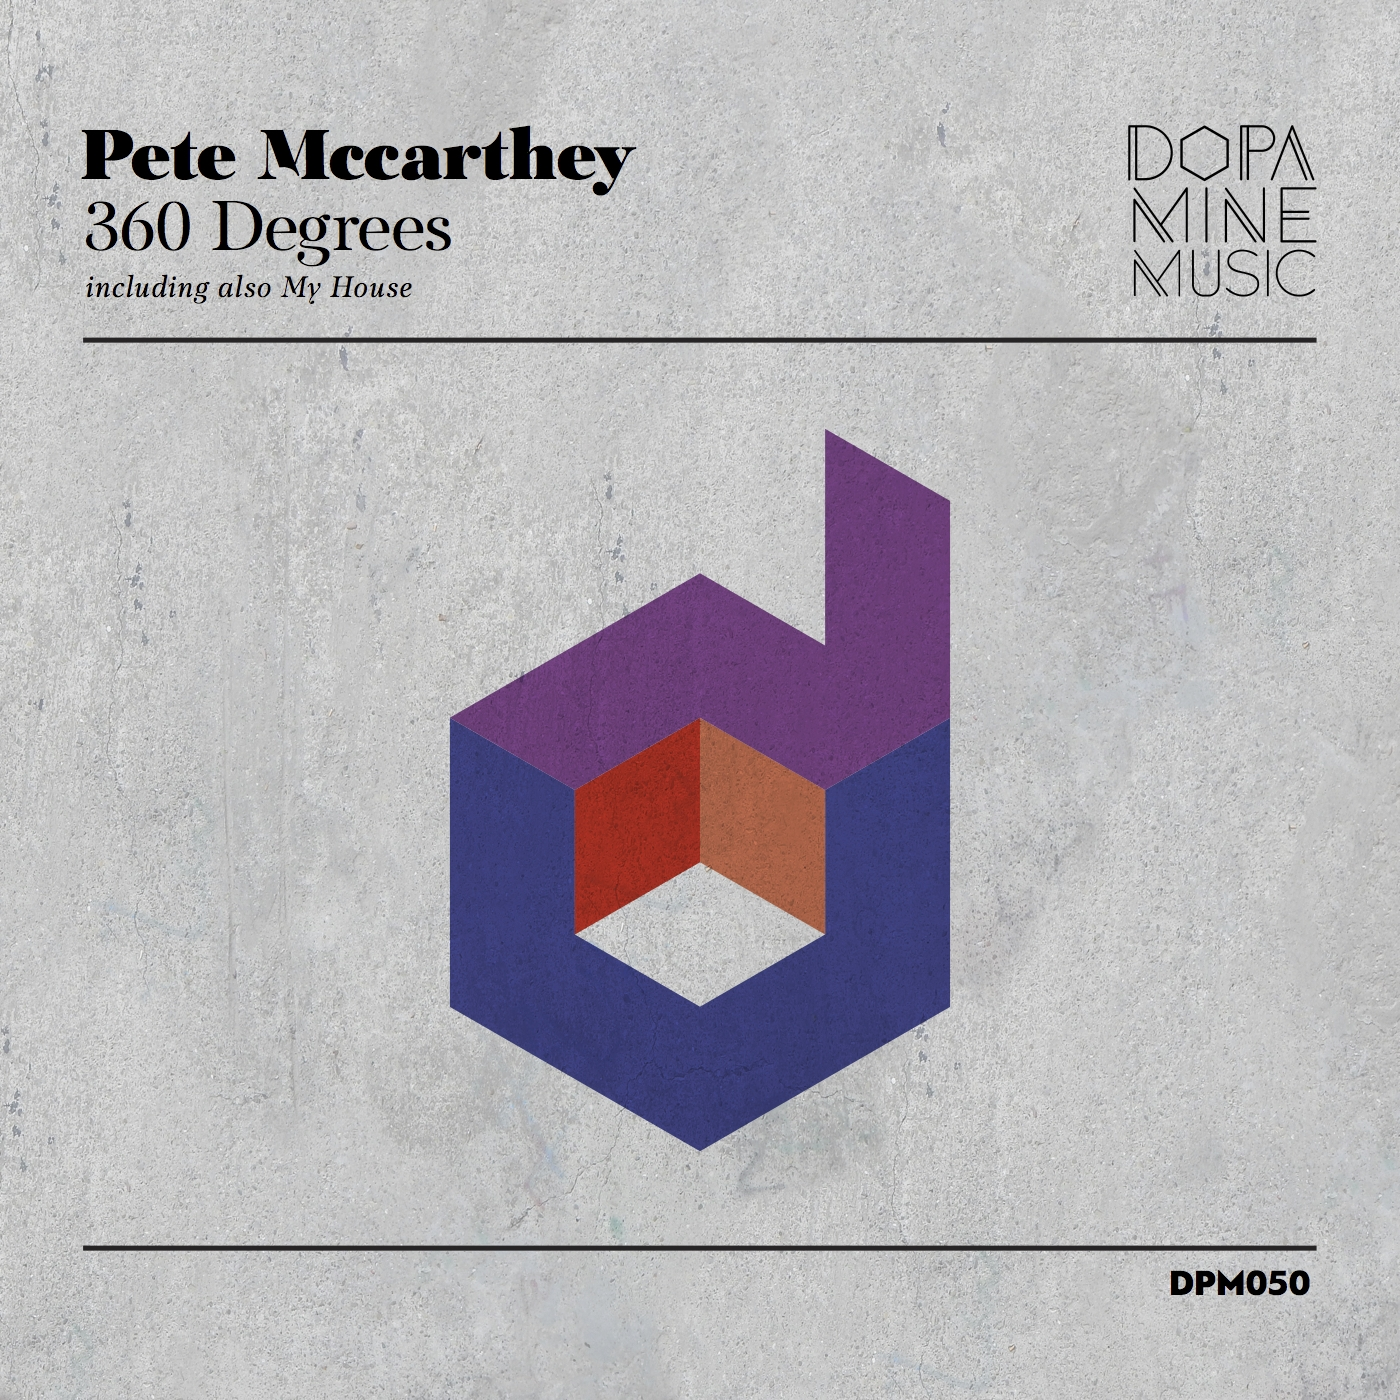 Pete McCarthey - 360 Degrees